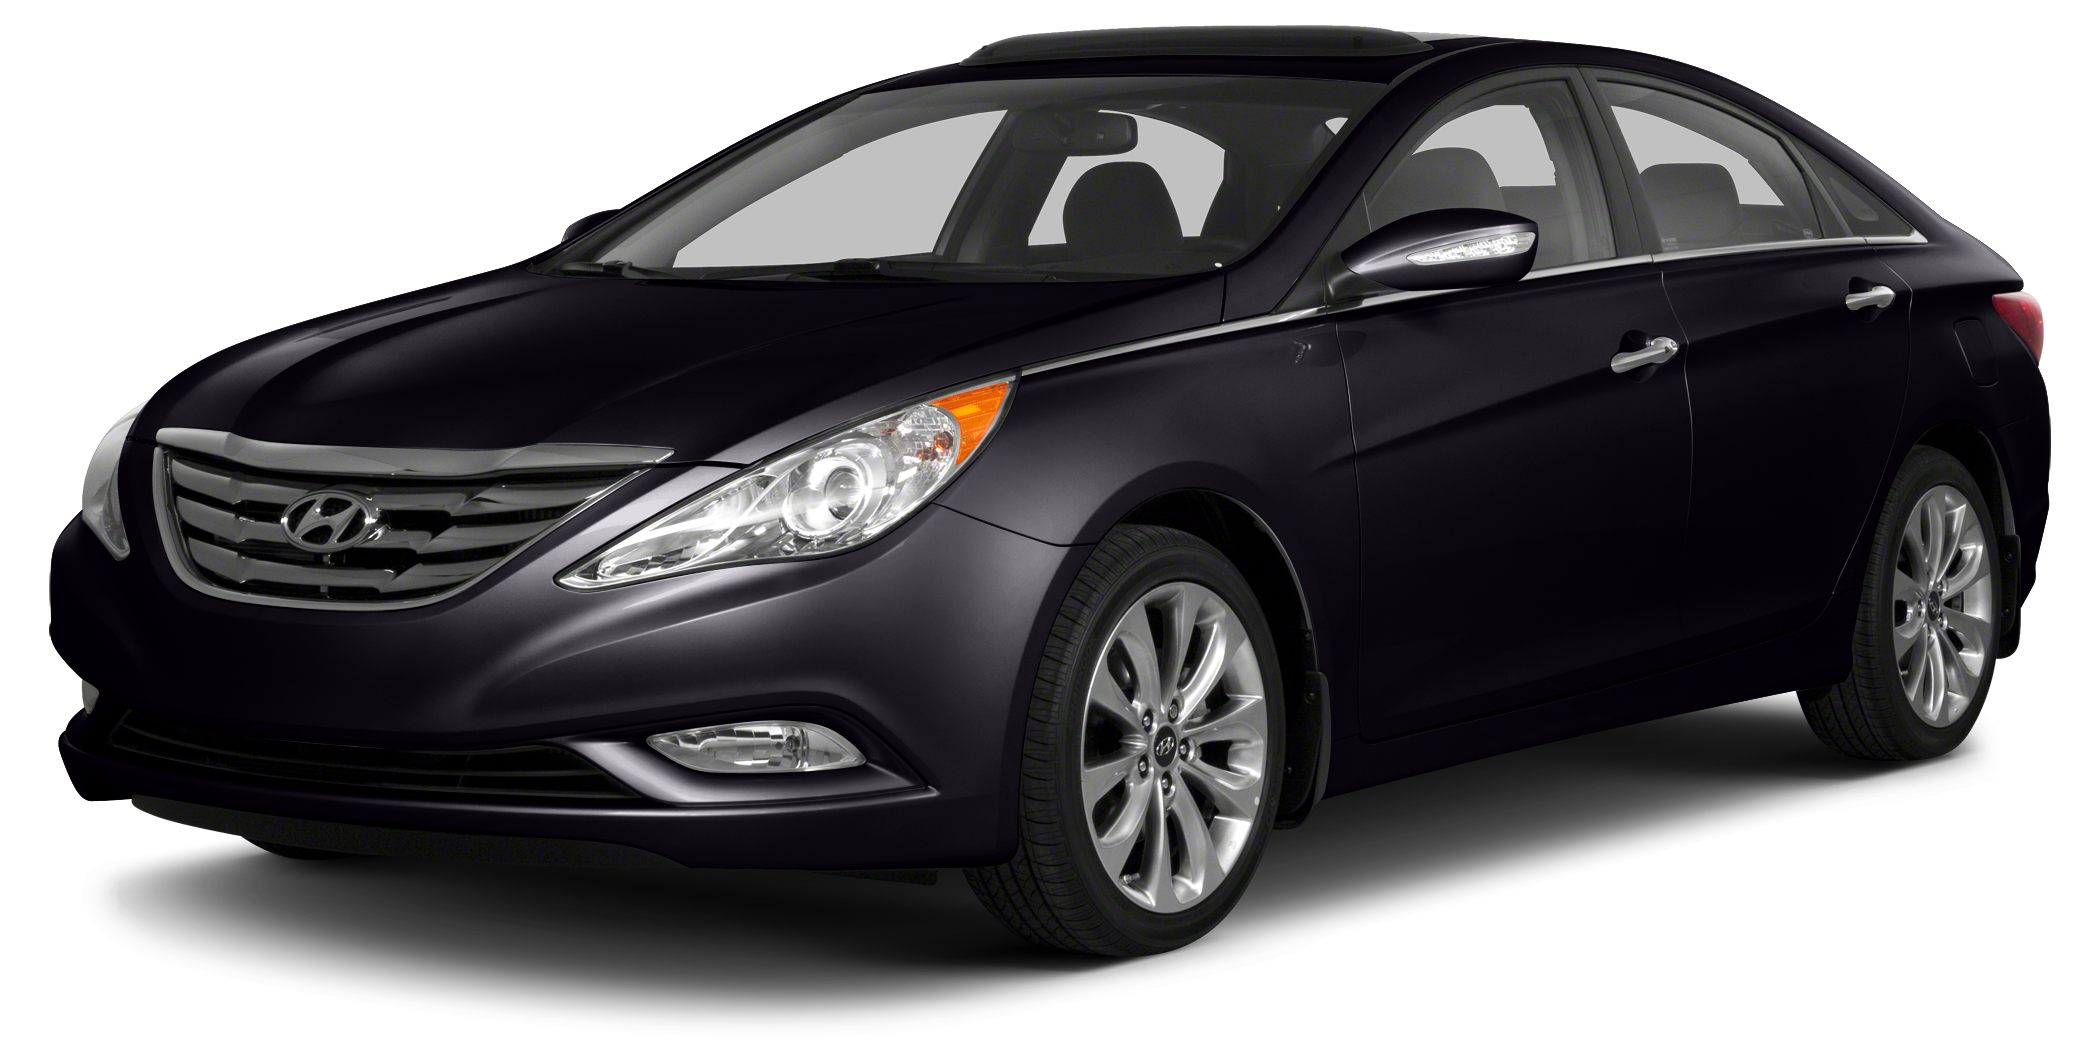 2013 Hyundai Sonata GLS Visit Best Auto Group online at bronxbestautocom to see more pictures of